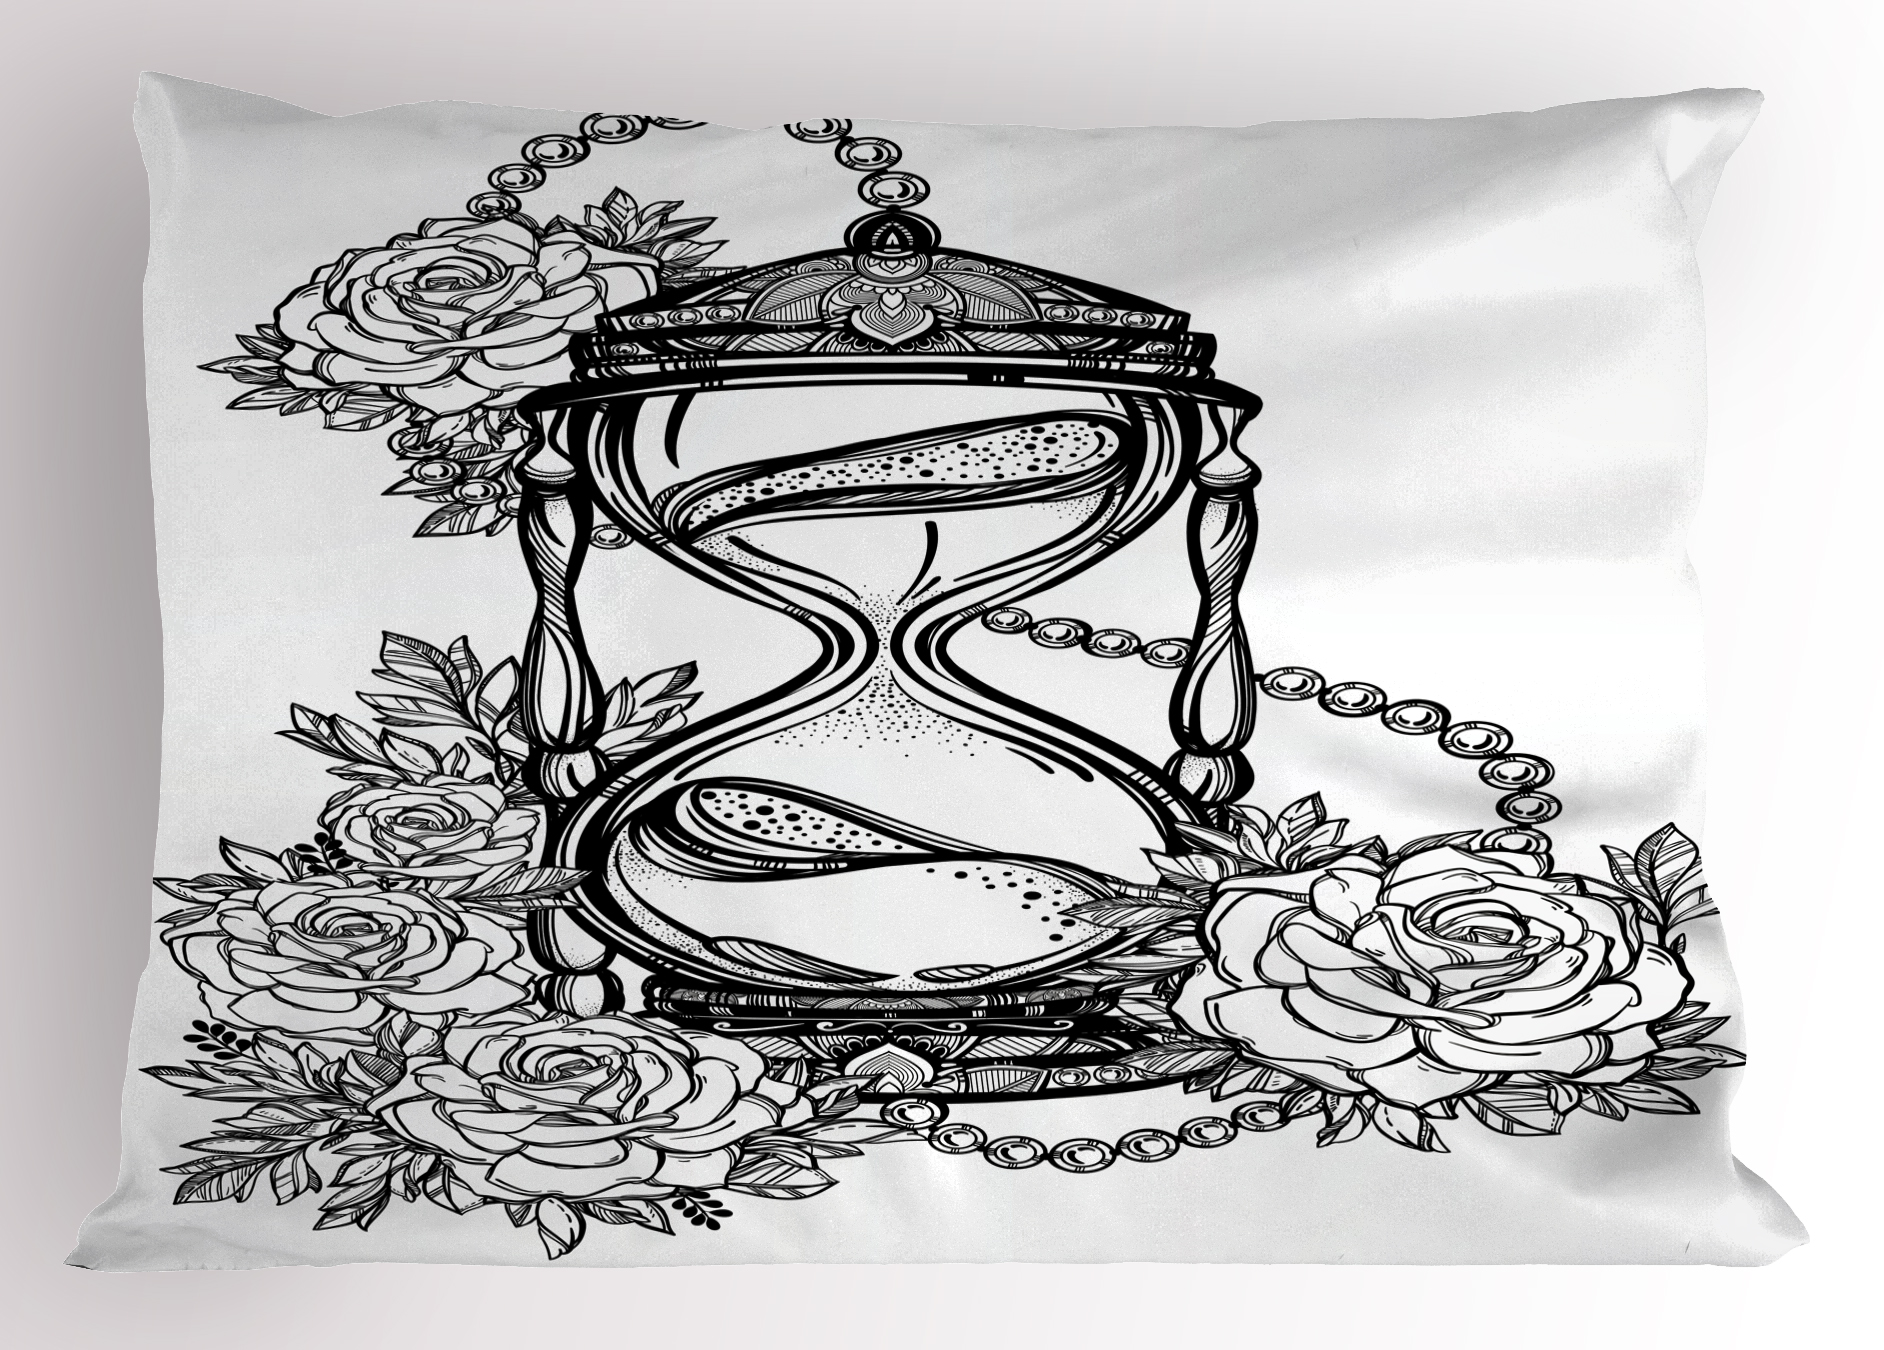 Tattoo pillow sham pencil drawing romantic theme hourglass symbol of eternal love with roses print decorative standard king size printed pillowcase